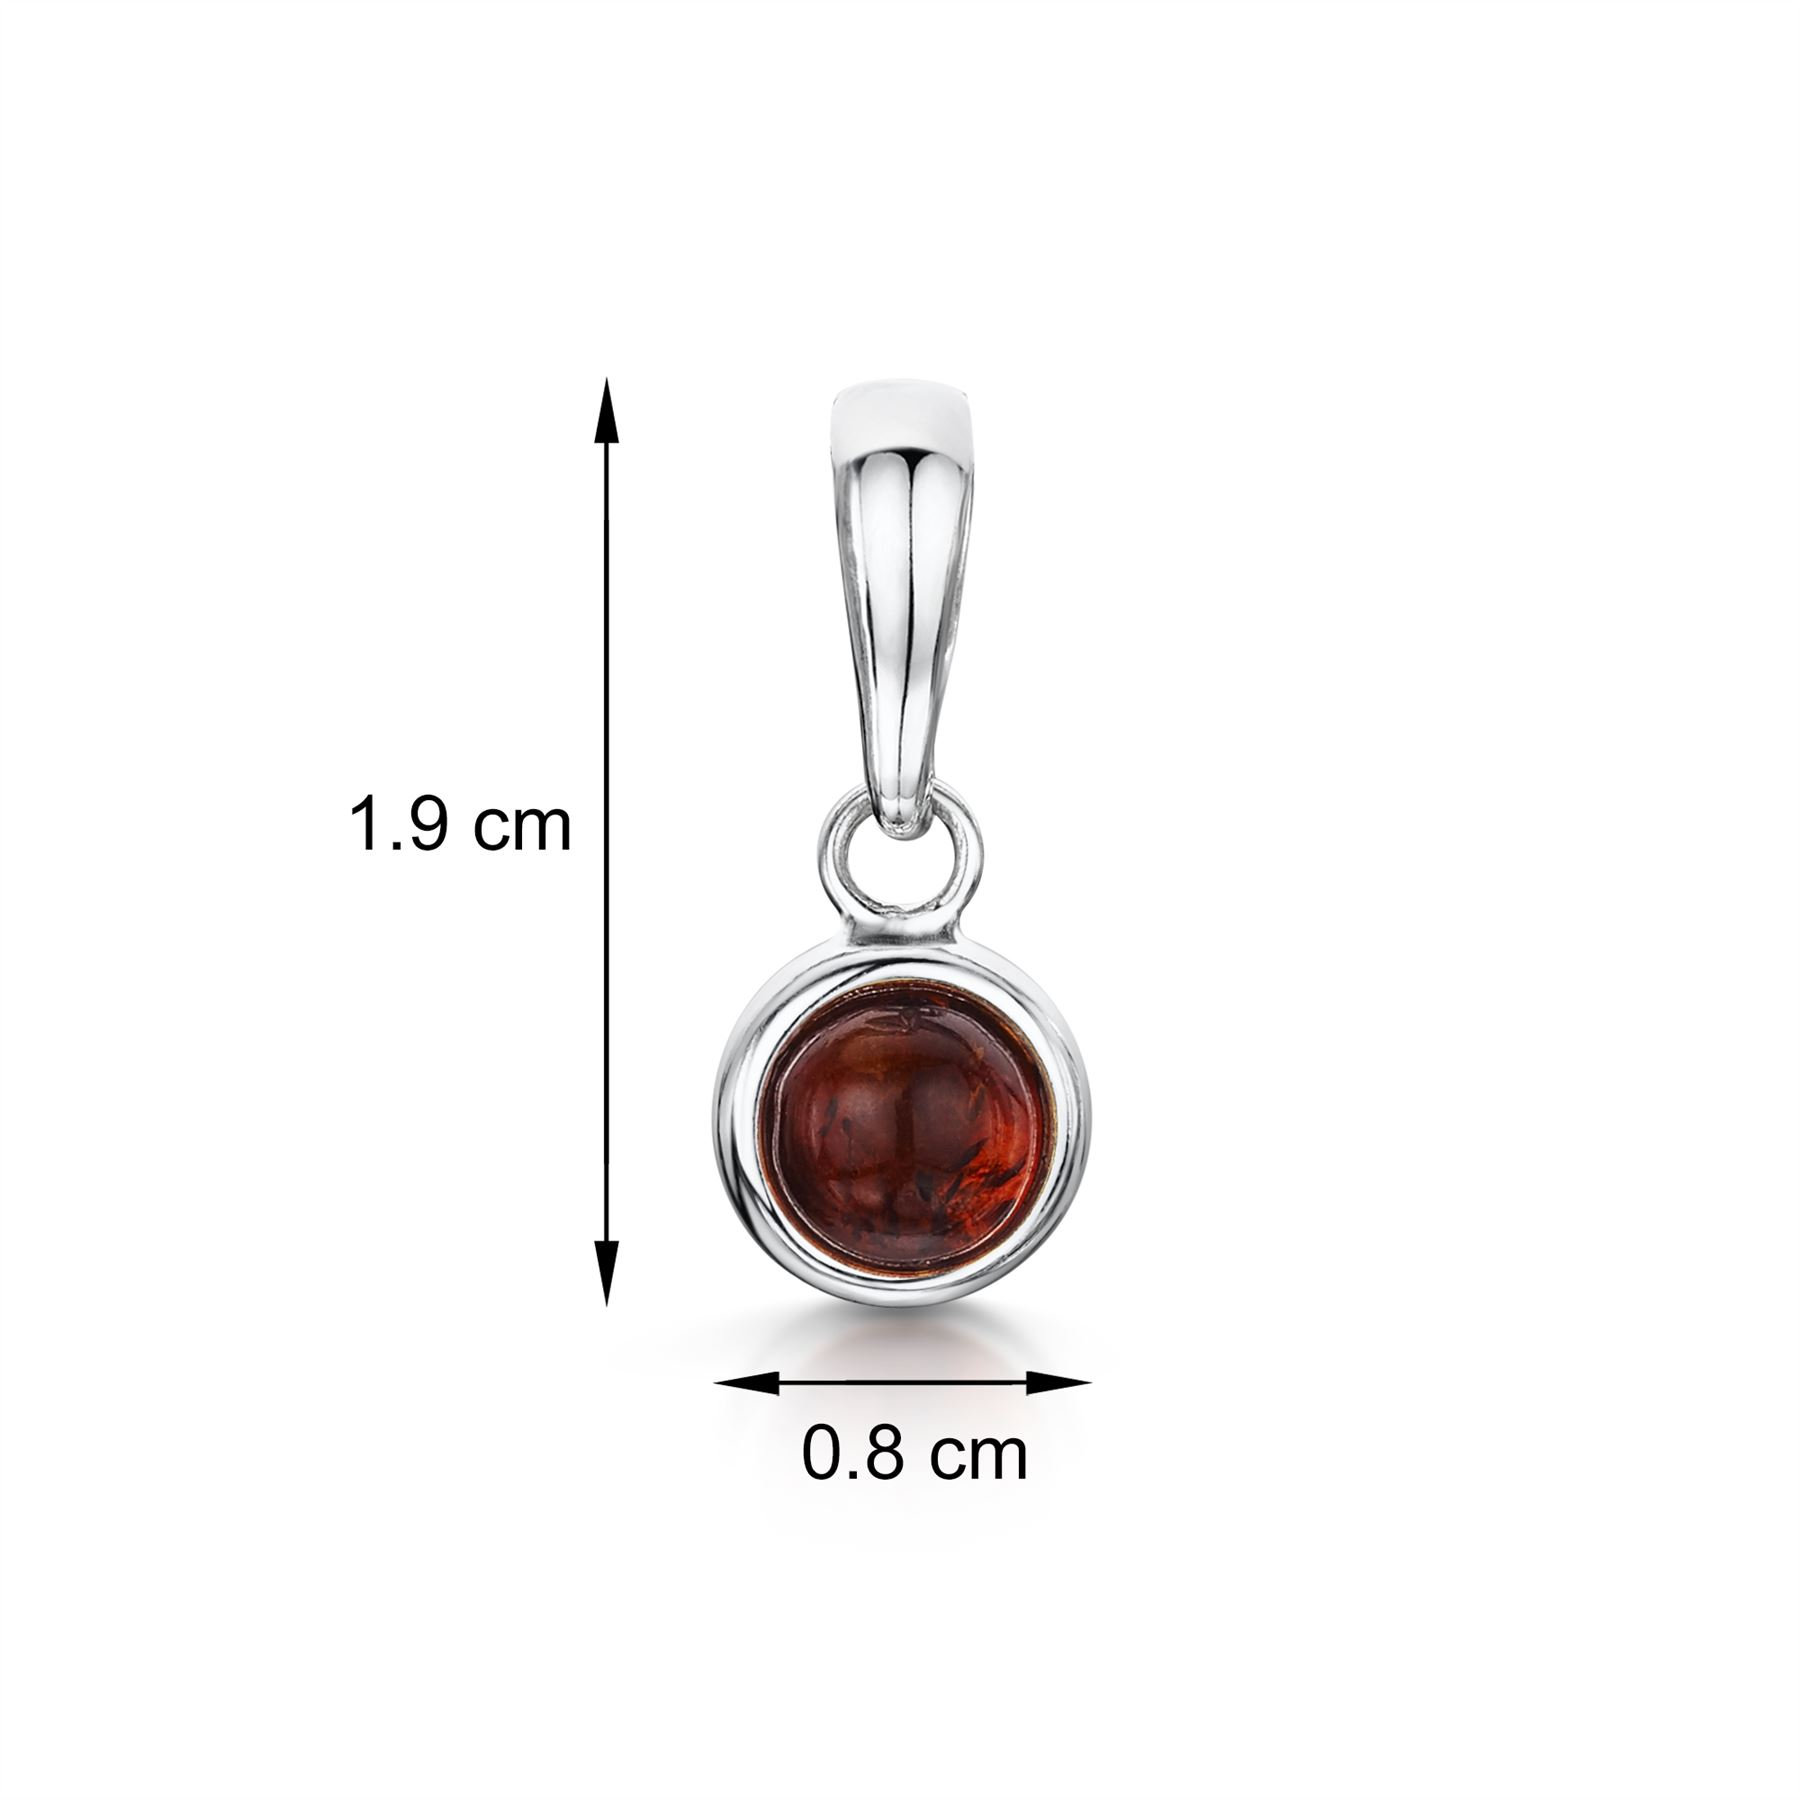 Amberta-Genuine-925-Sterling-Silver-Pendant-with-Natural-Baltic-Amber-Gemstone thumbnail 75